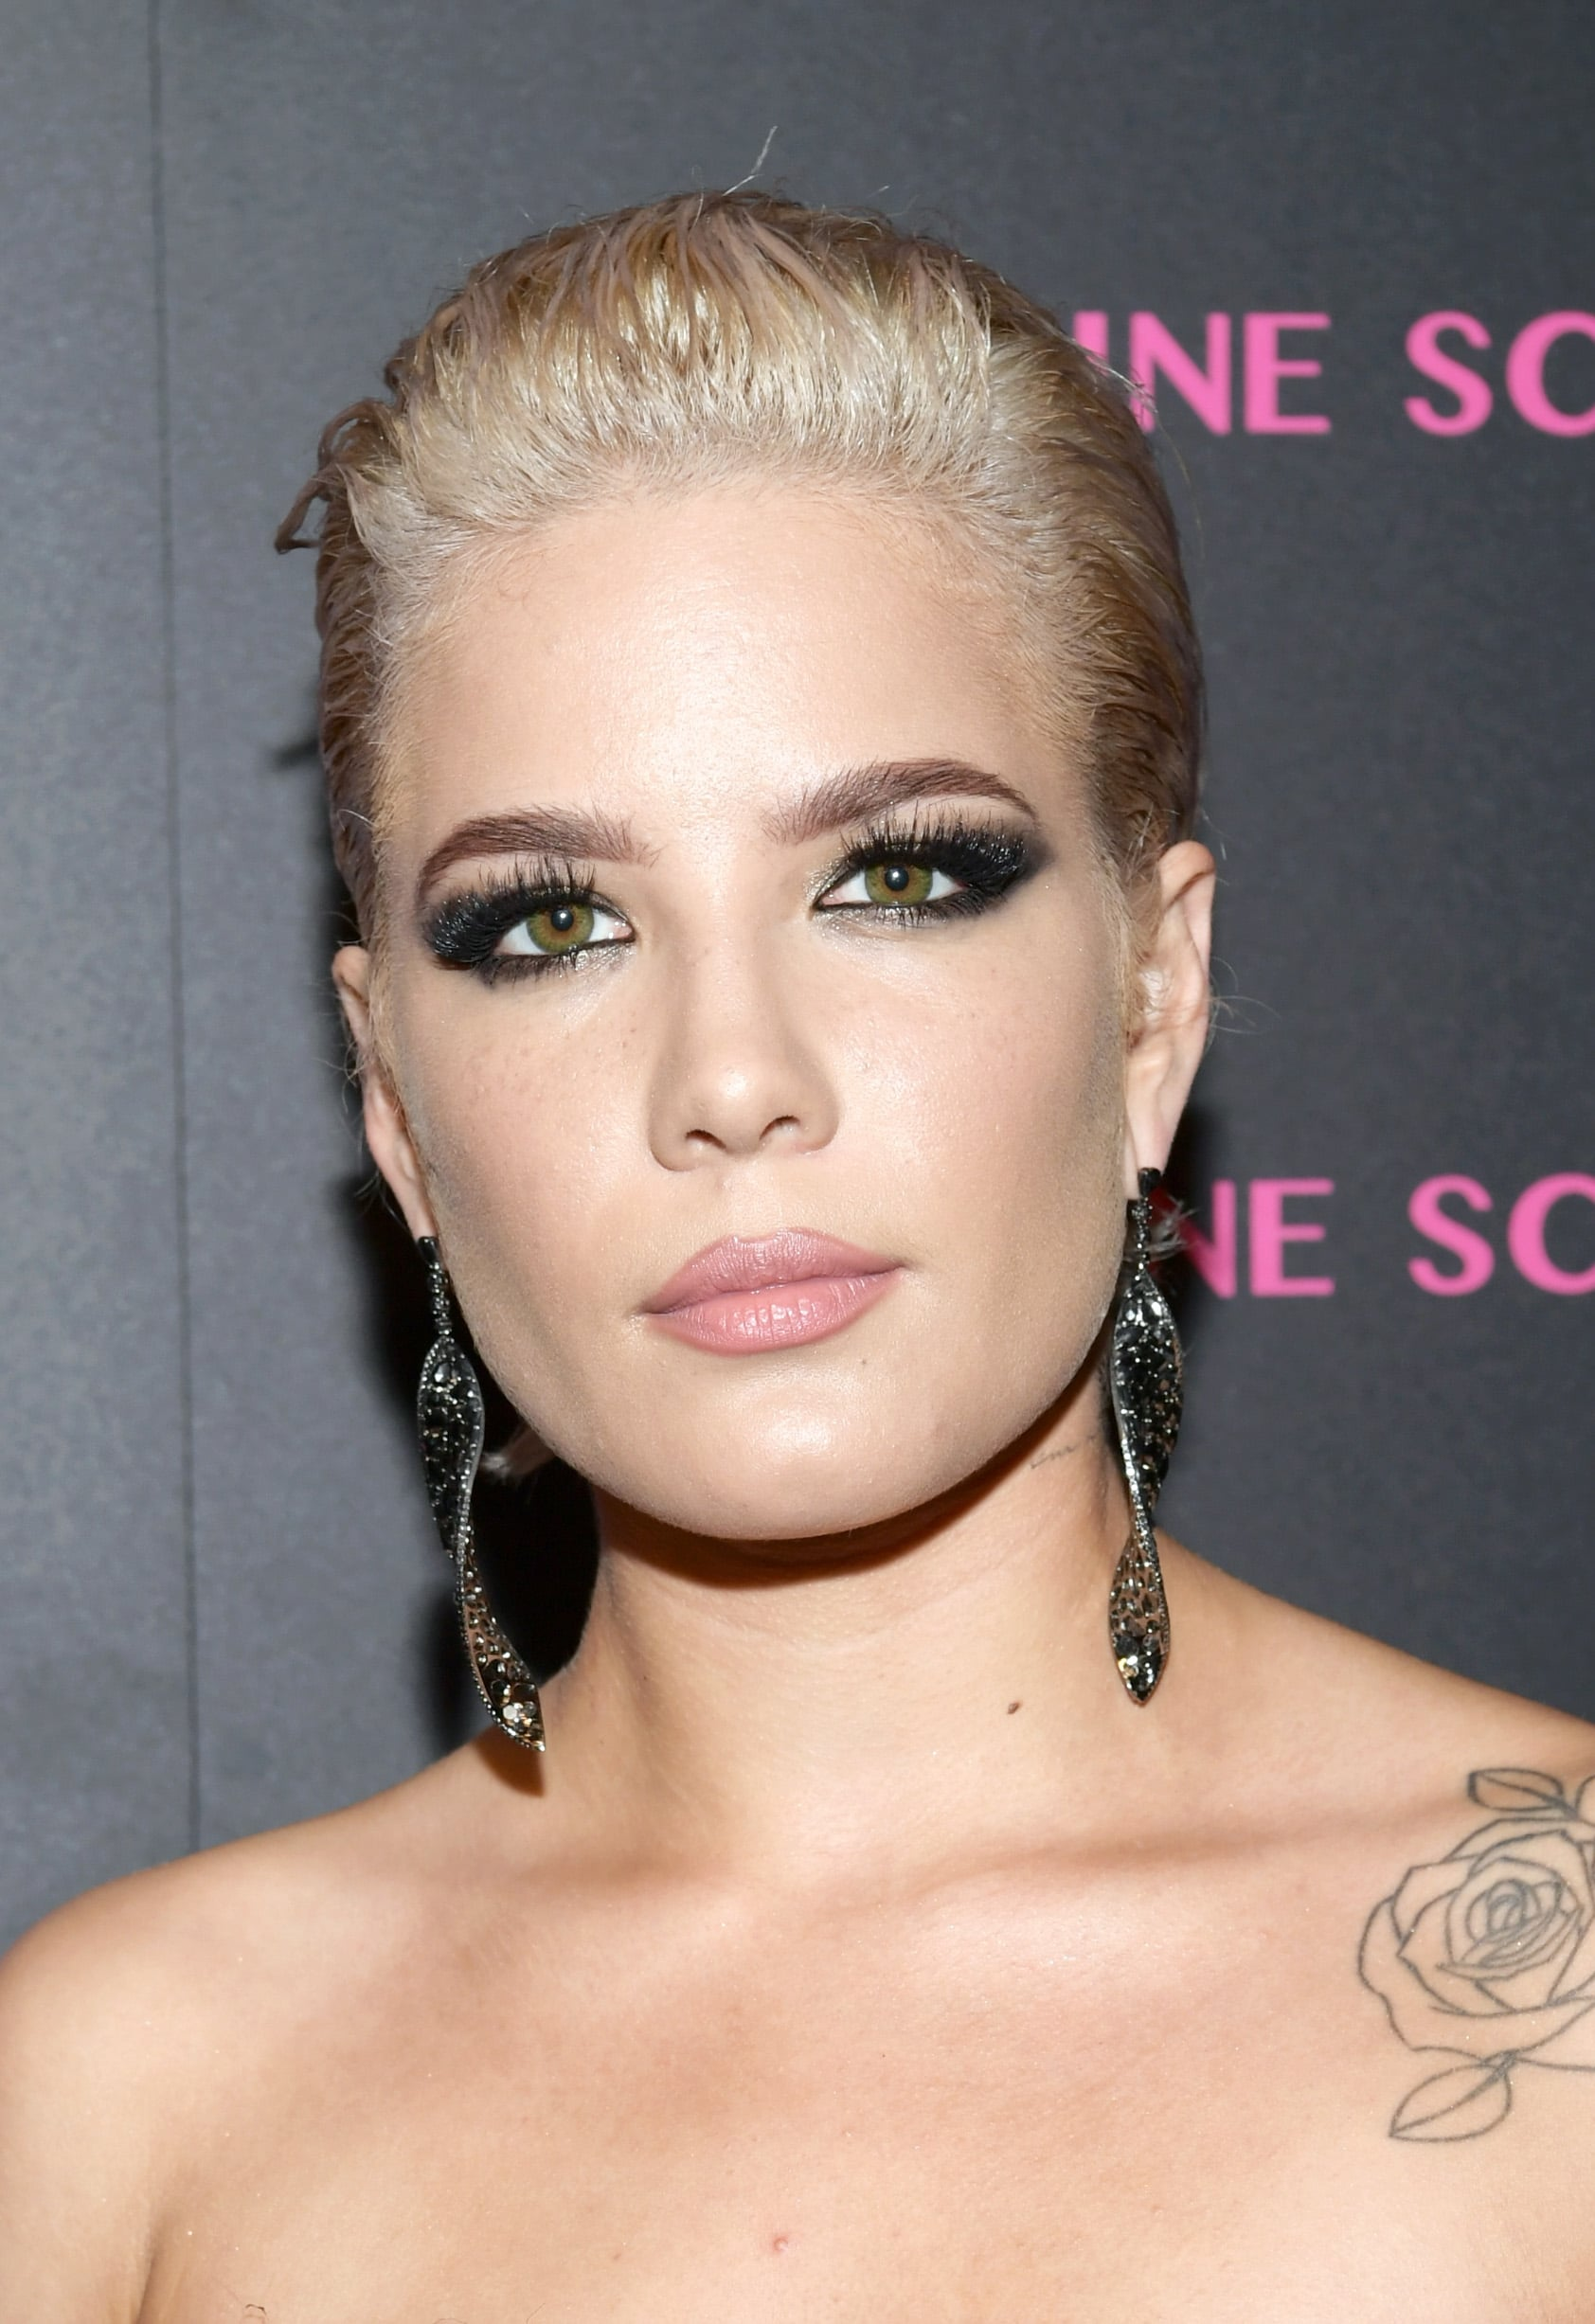 WEST HOLLYWOOD, CA - MARCH 13:  Halsey attends Lorraine Schwartz launches The Eye Bangle a new addition to her signature Against Evil Eye Collection at Delilah on March 13, 2018 in West Hollywood, California.  (Photo by Emma McIntyre/Getty Images for Lorraine Schwartz )